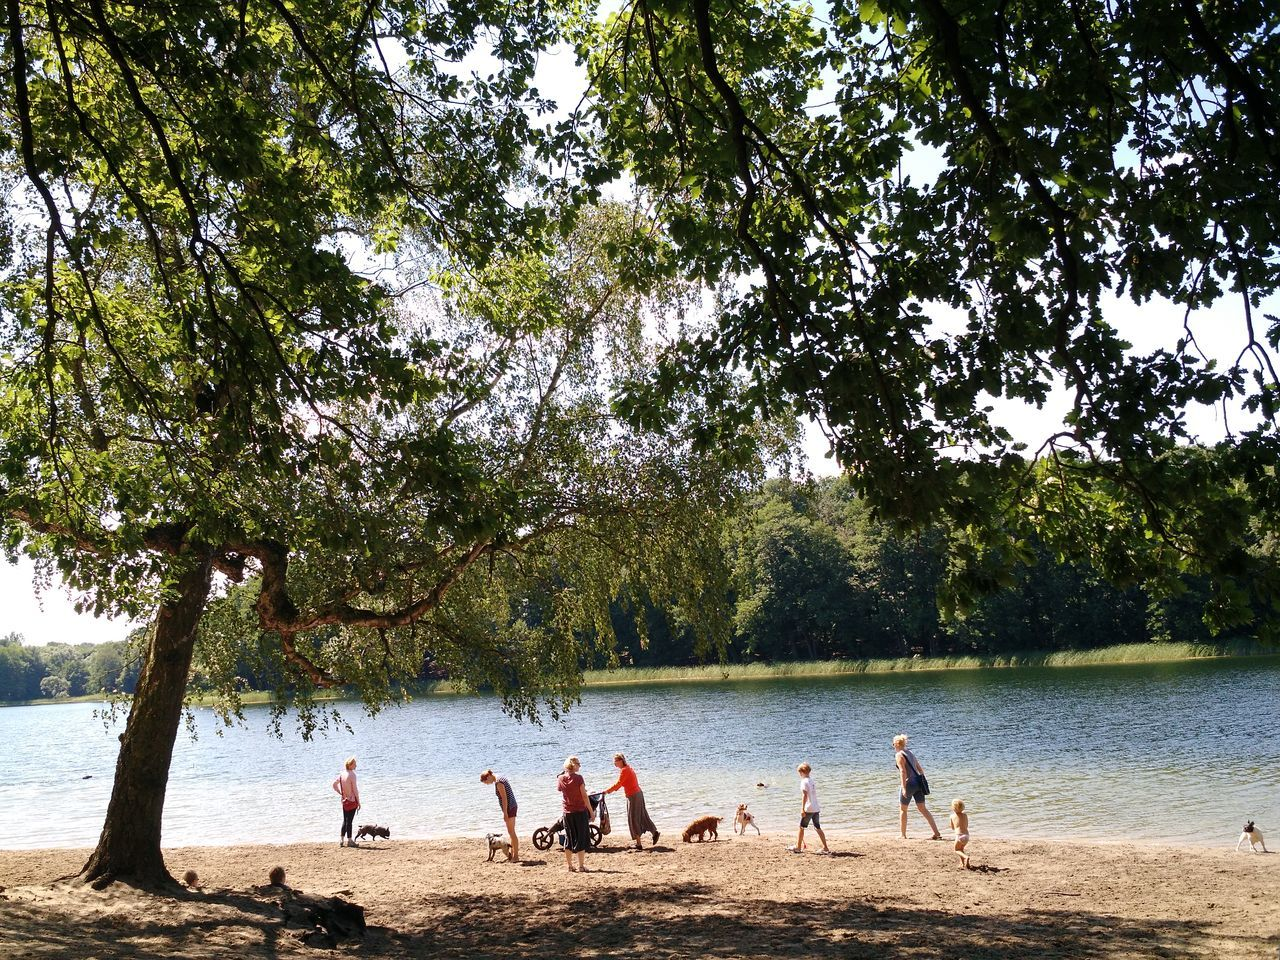 tree, day, medium group of people, outdoors, water, nature, growth, togetherness, real people, leisure activity, men, playing, beauty in nature, beach, sports team, competitive sport, sky, adult, people, adults only